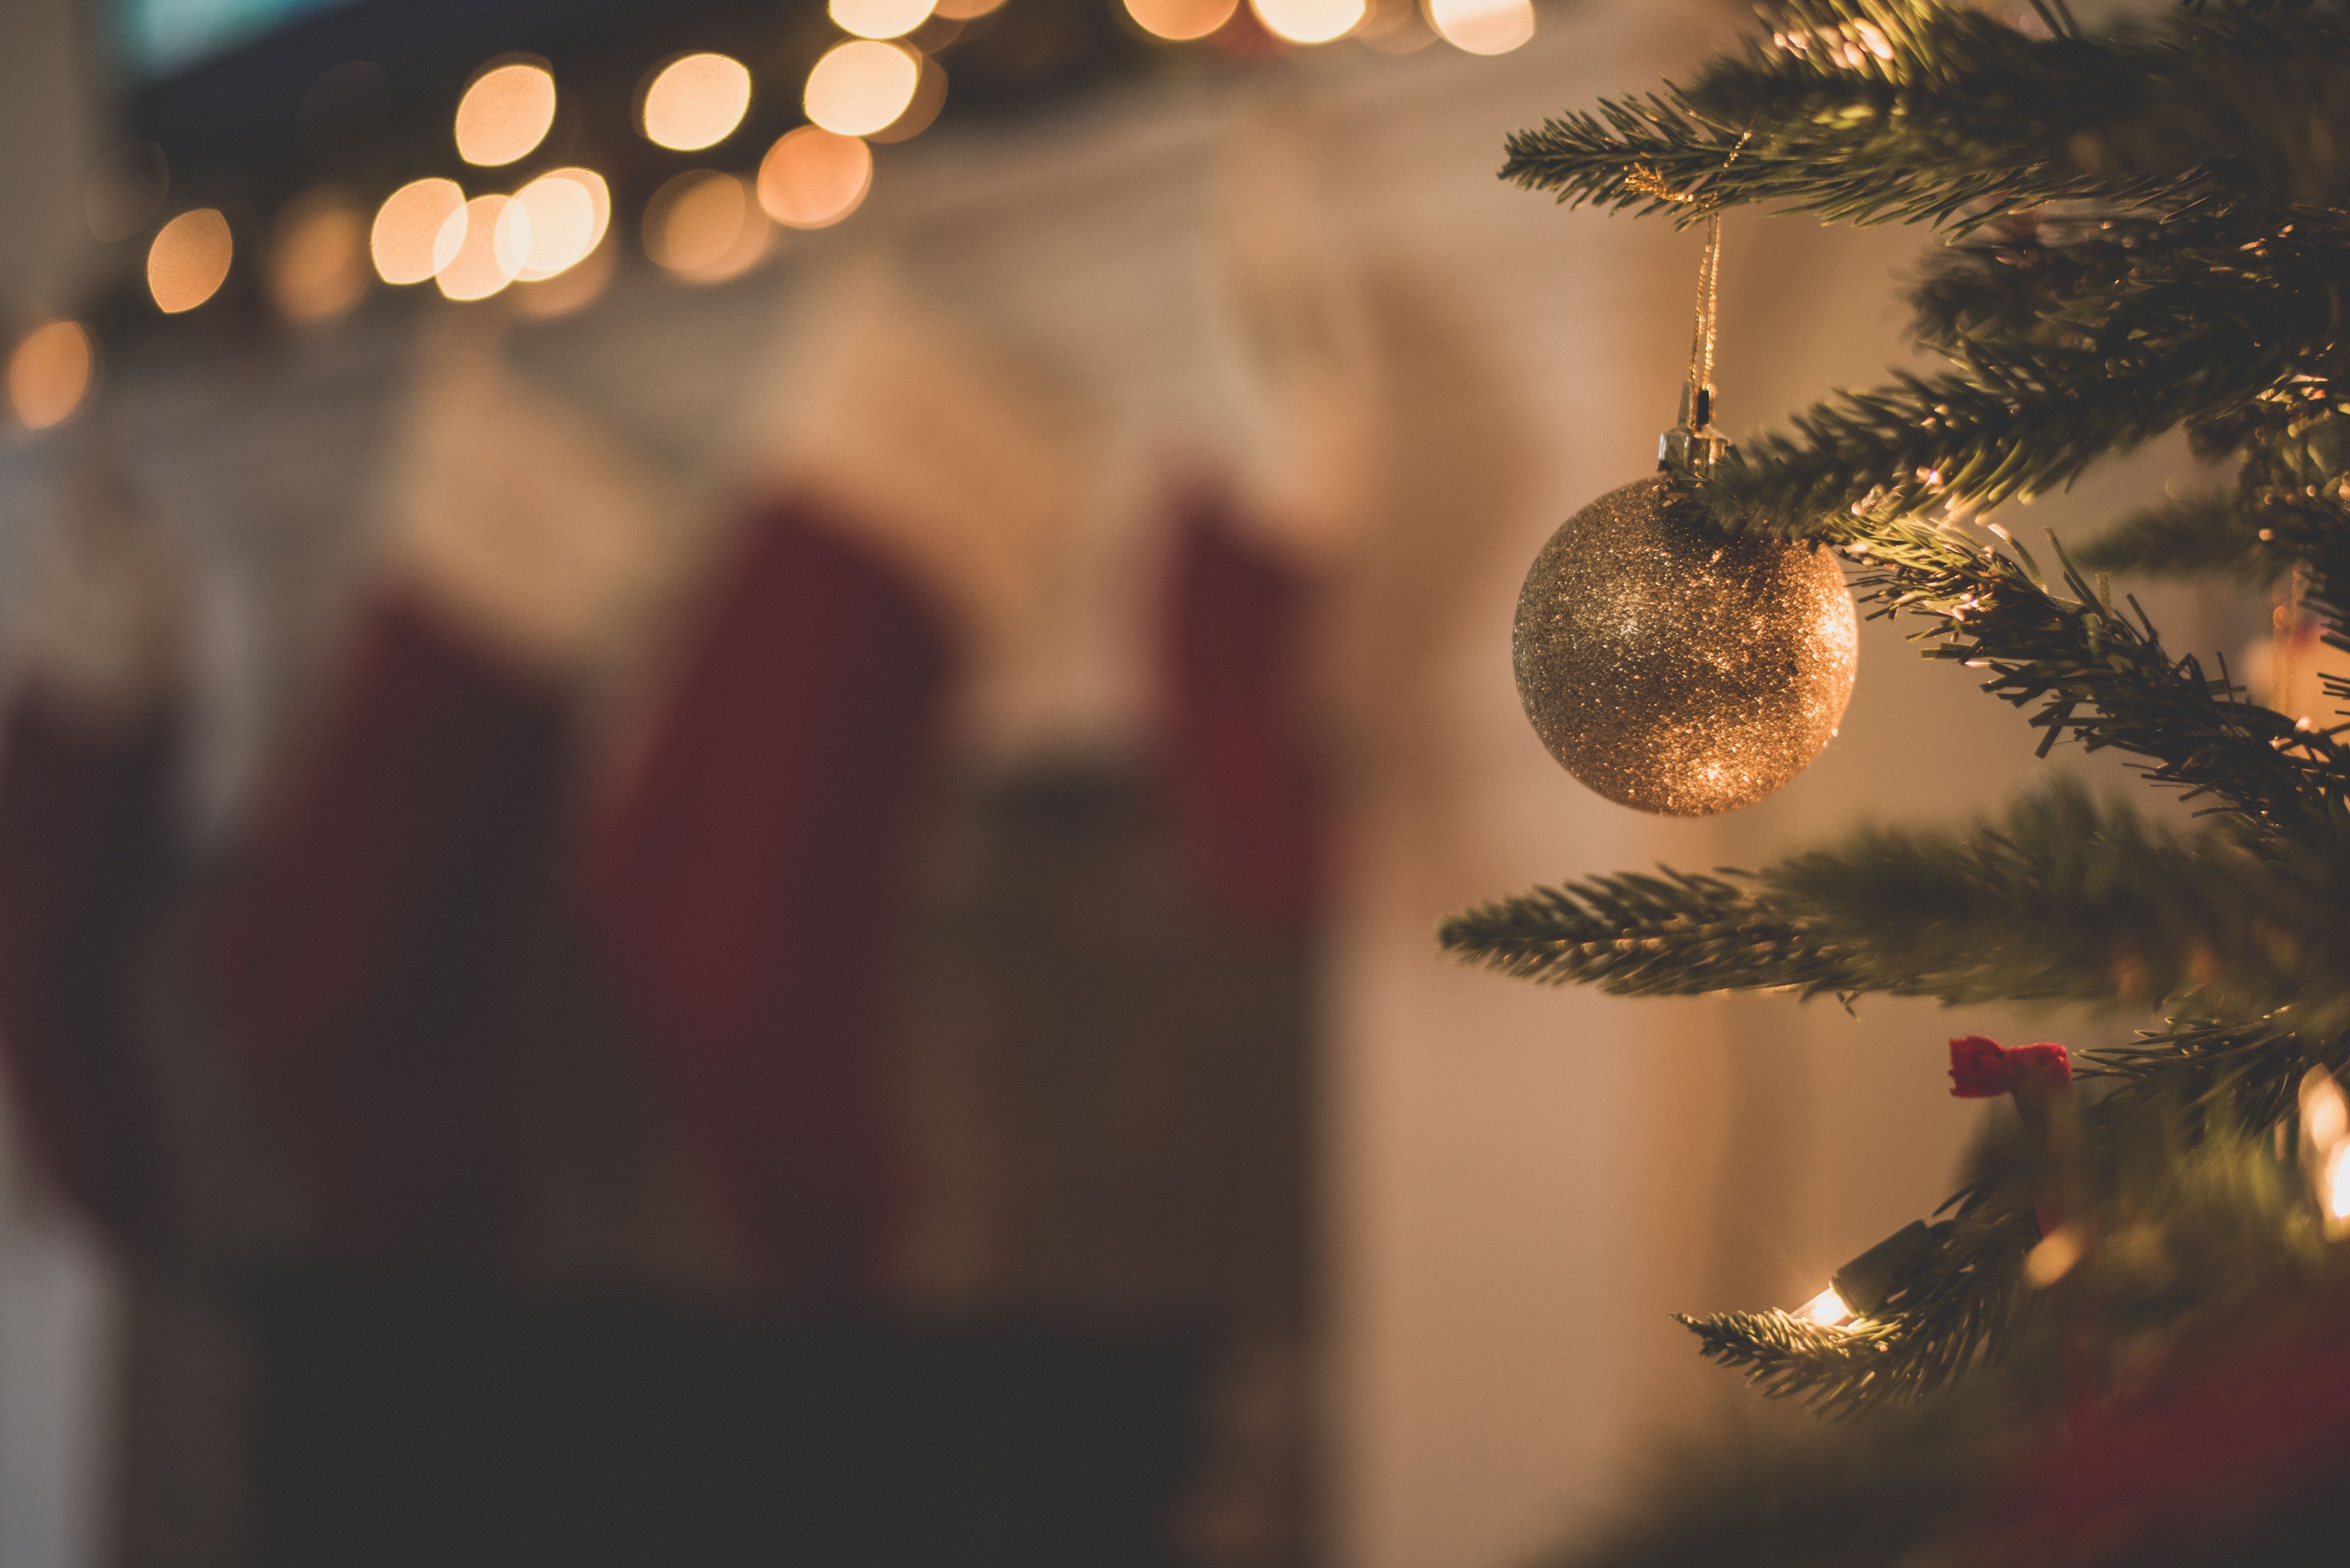 Christmas Wallpapers Free Hd Download 500 Hq Unsplash